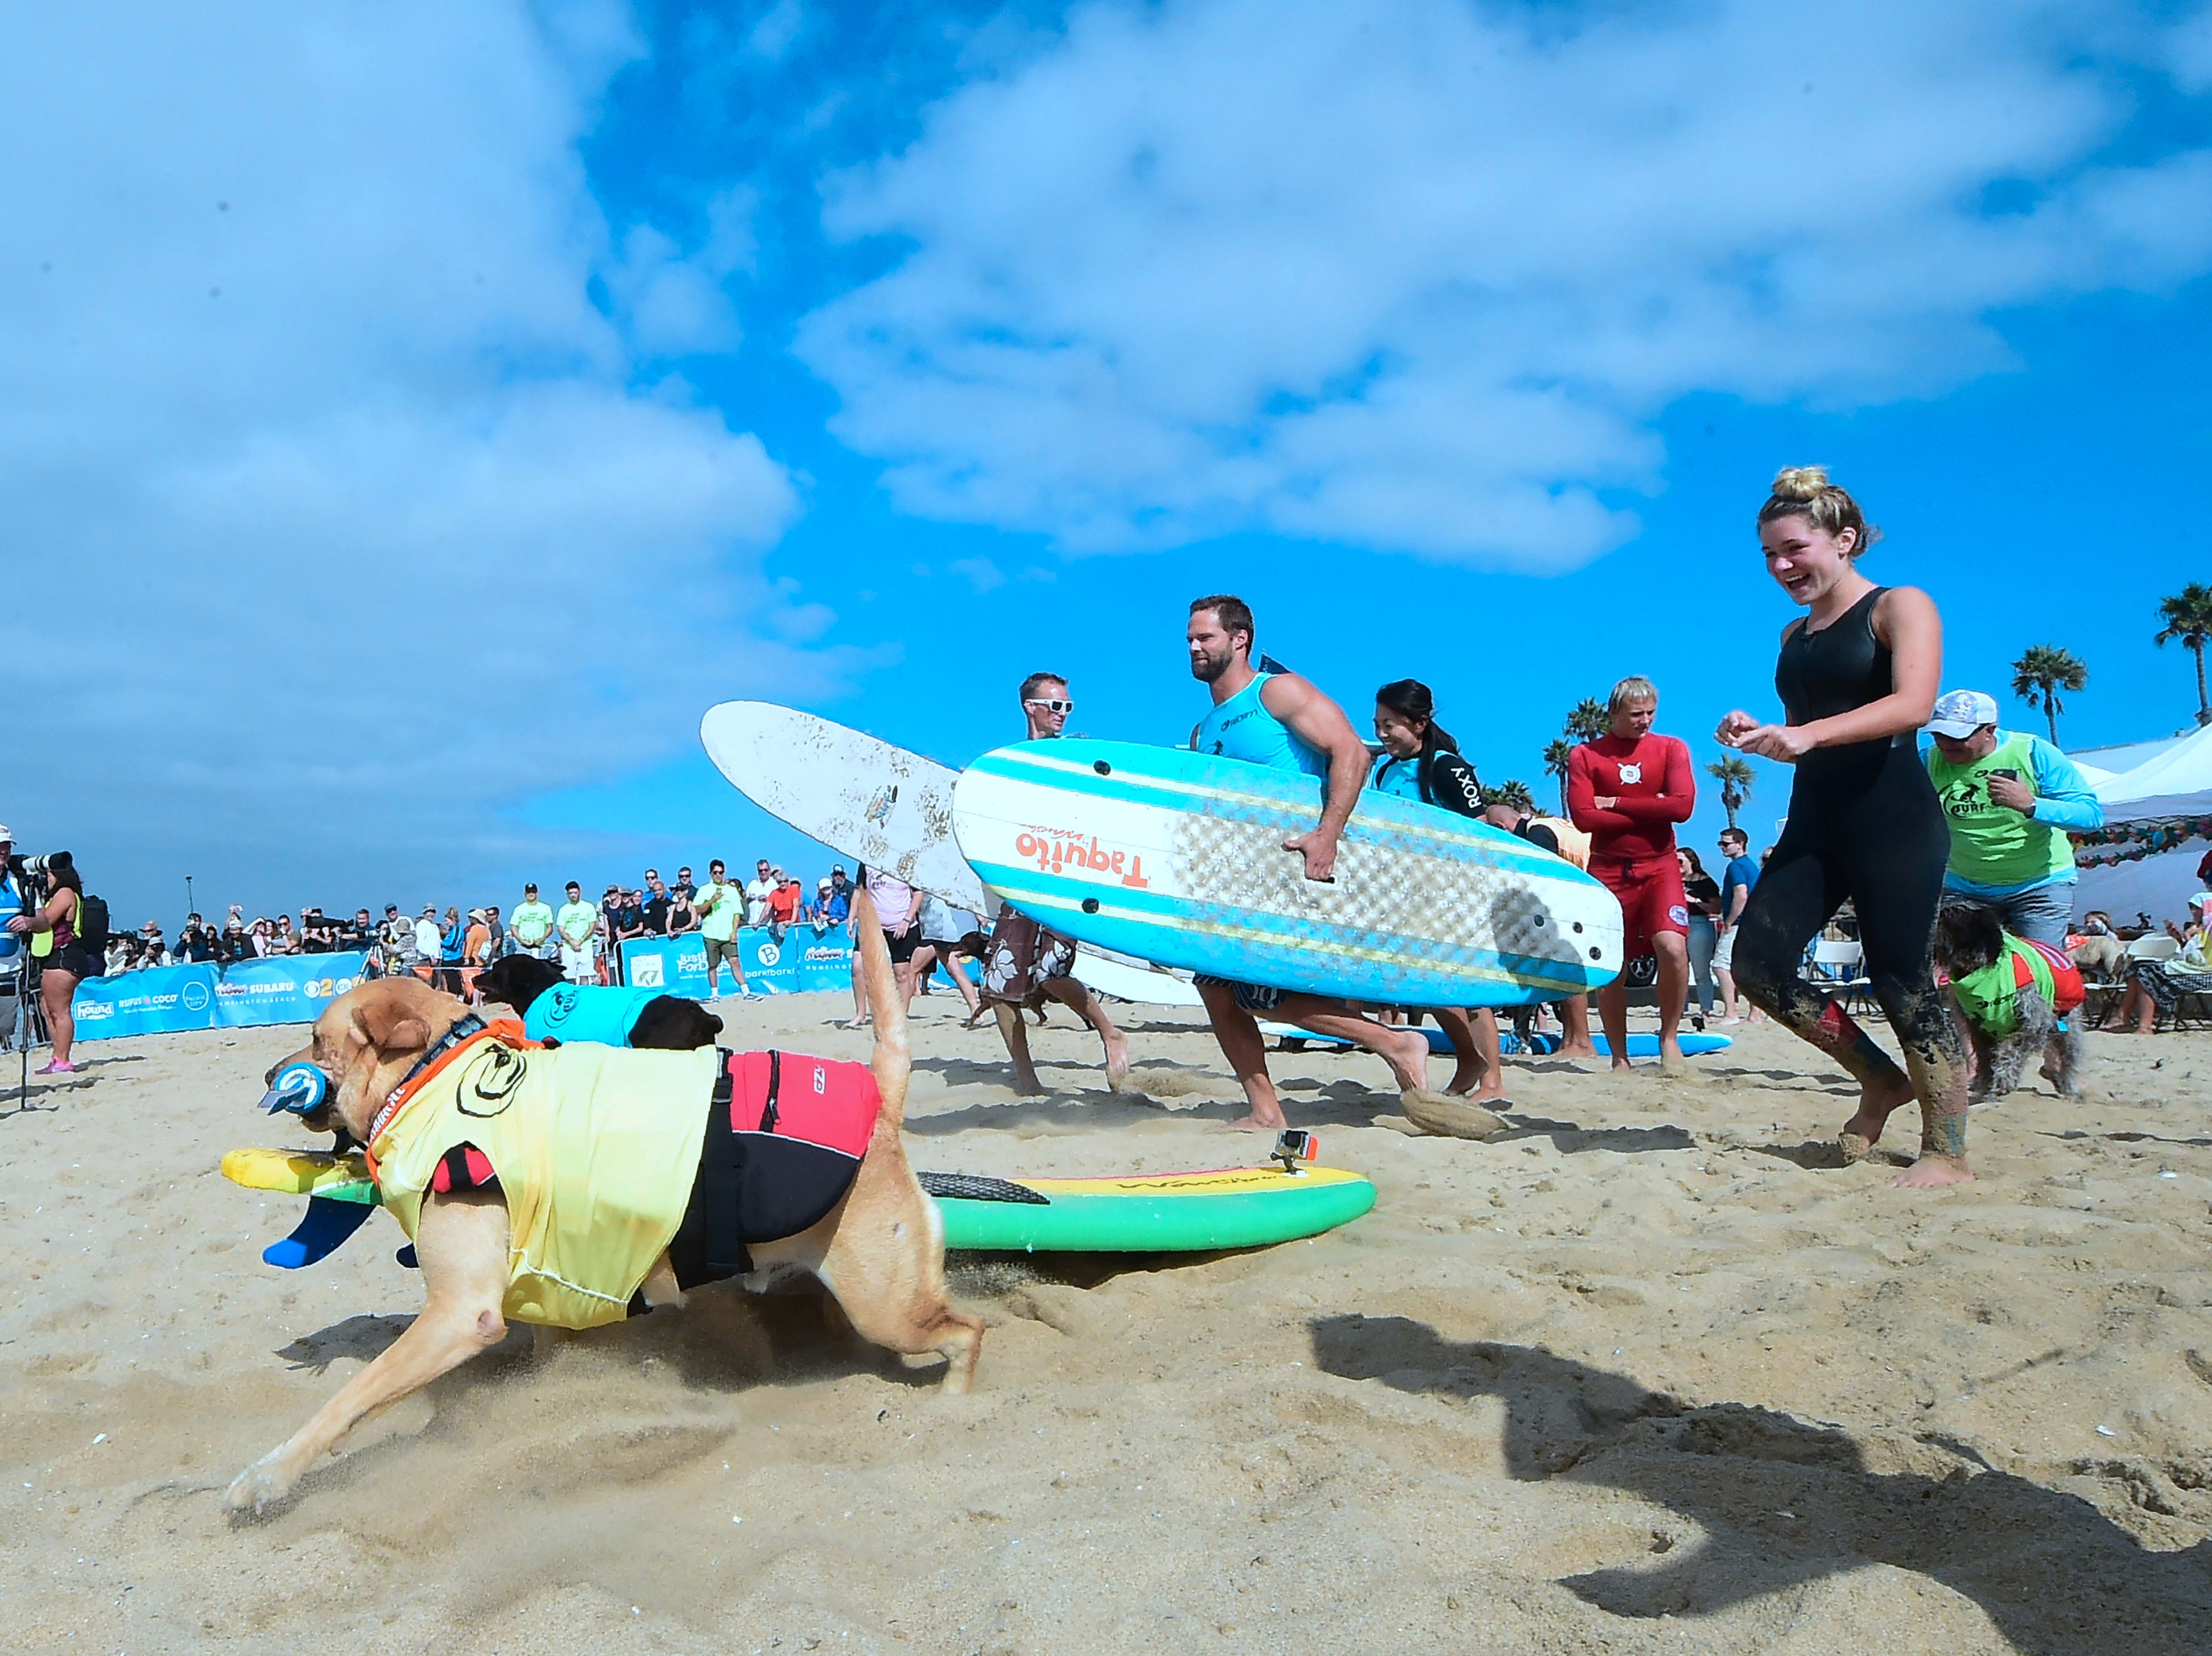 Surf Dog Maya carries her board as contestants rush to the water.